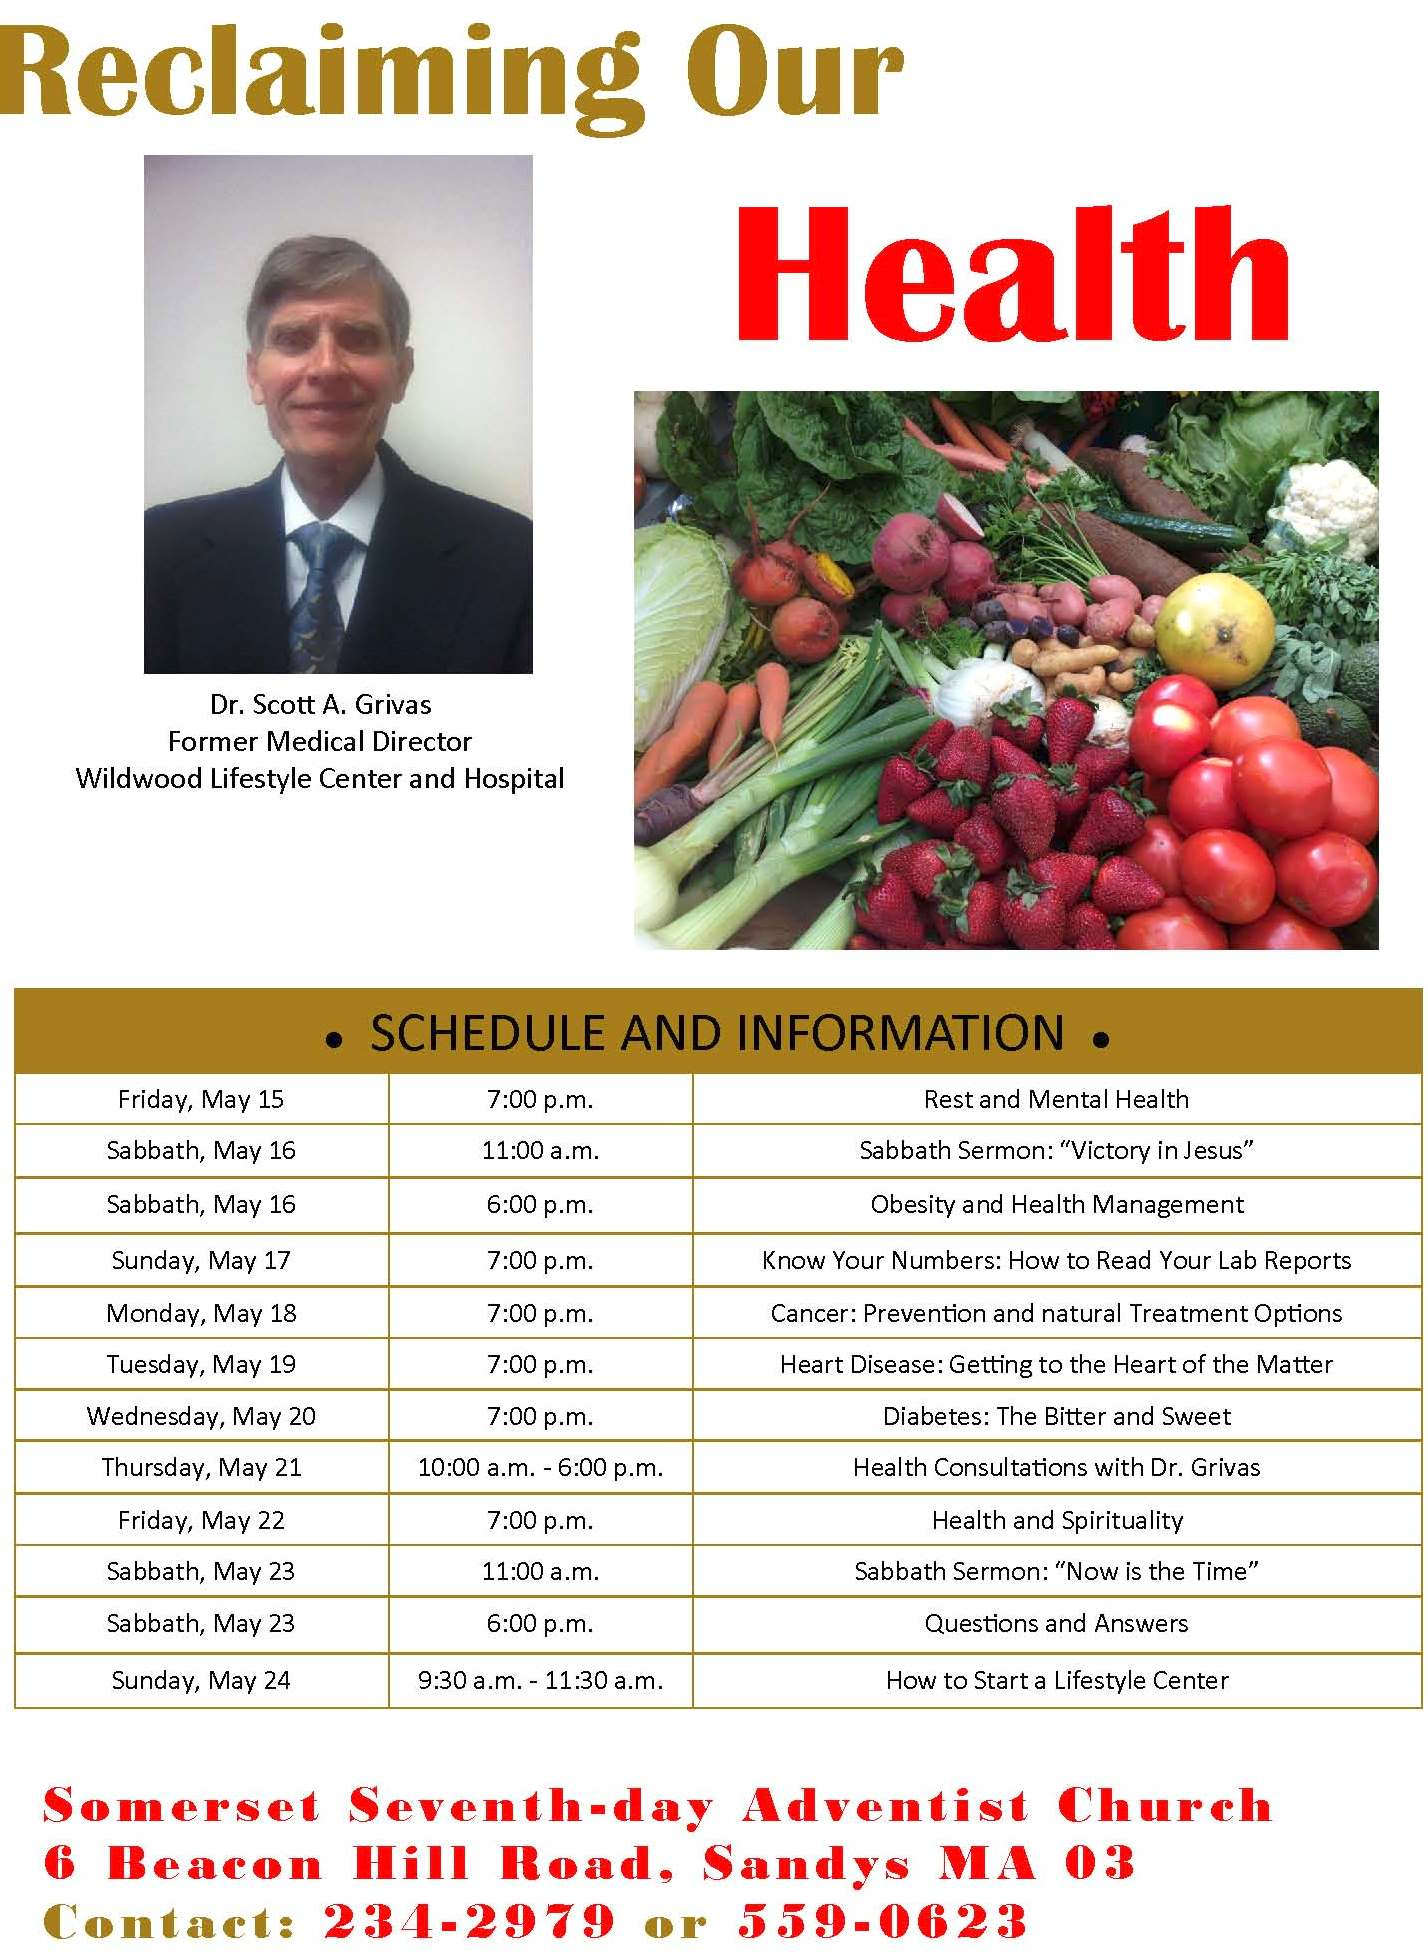 """Sabbath Sermon: """"Now is the Time"""" – Reclaiming Our Health"""